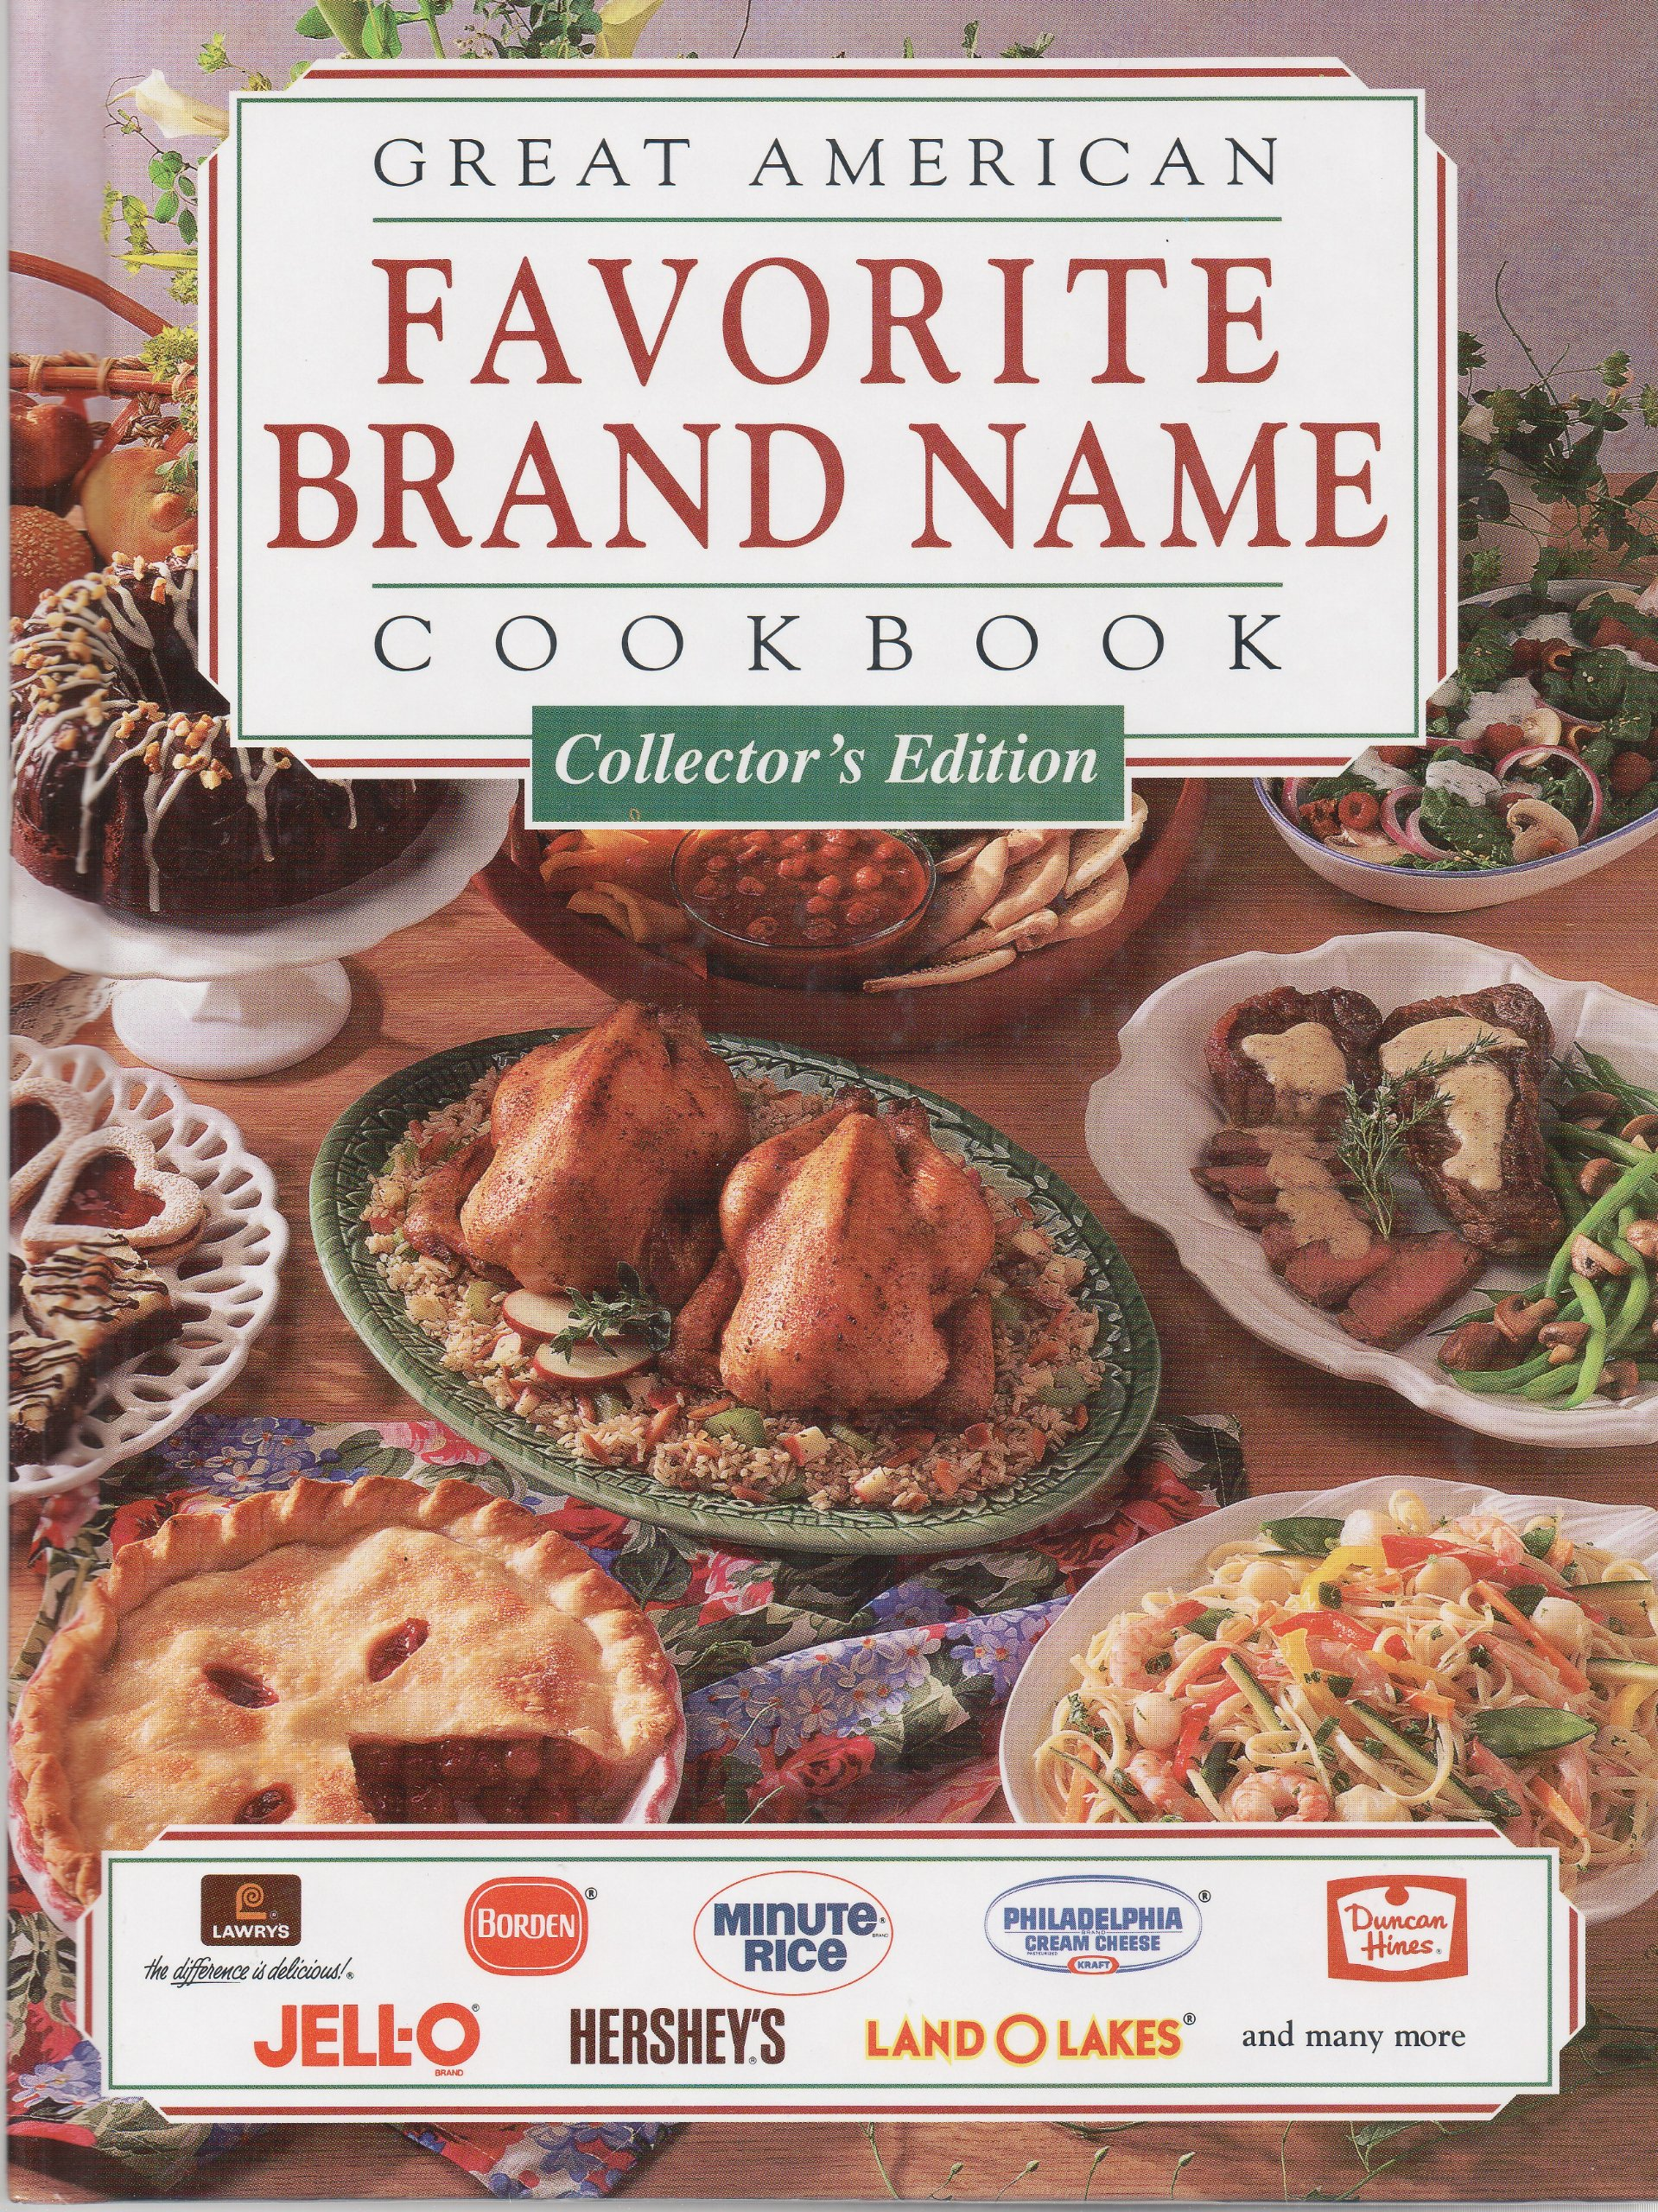 Great american favorite brand name cookbook publications great american favorite brand name cookbook publications international 9780785315759 amazon books forumfinder Images